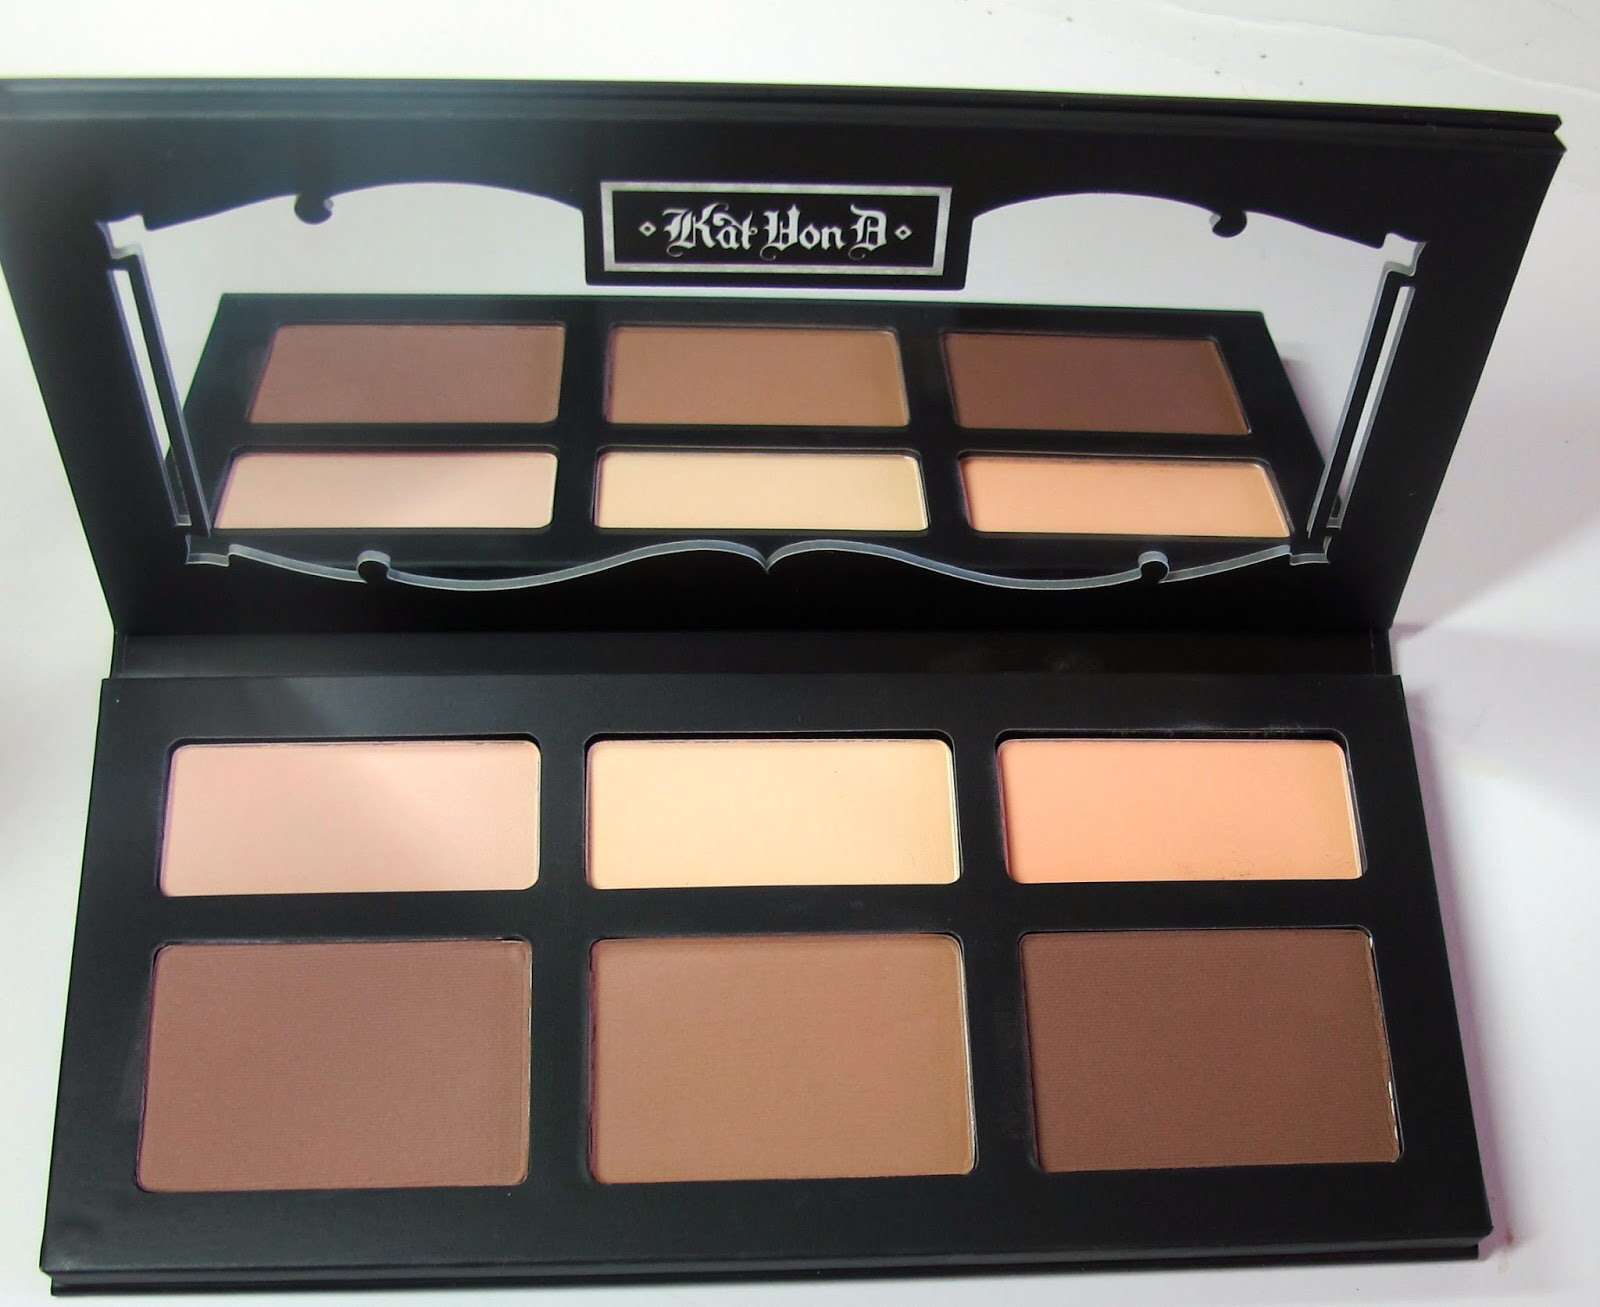 Kat Von D Shade & Light Contour Palette Review